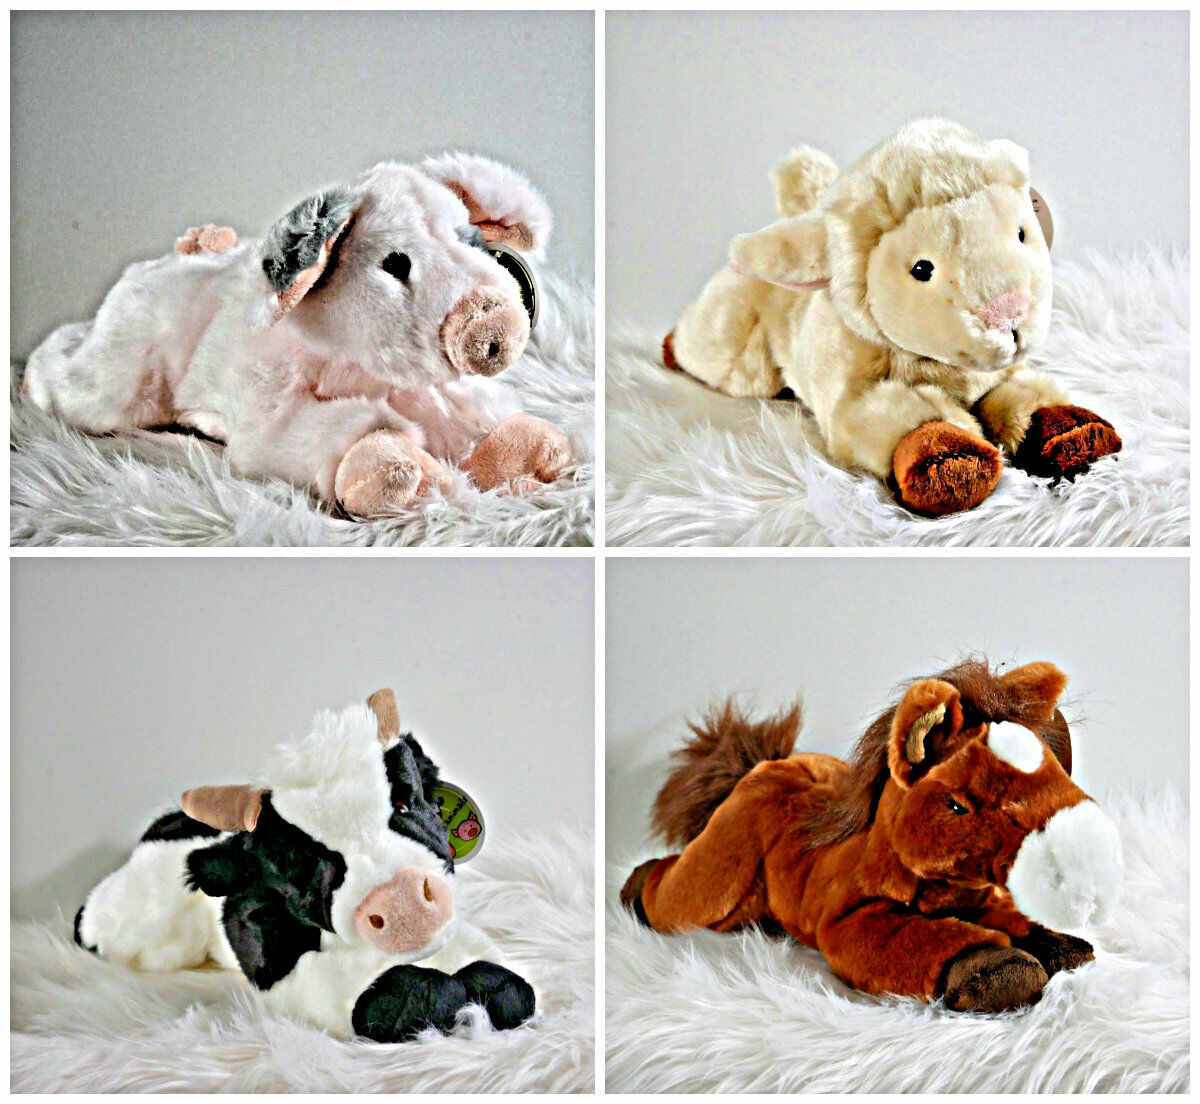 Plush Super Soft Toys Cute Baby Animals Farm Animals 20cm Toddlers Stuffed Toy